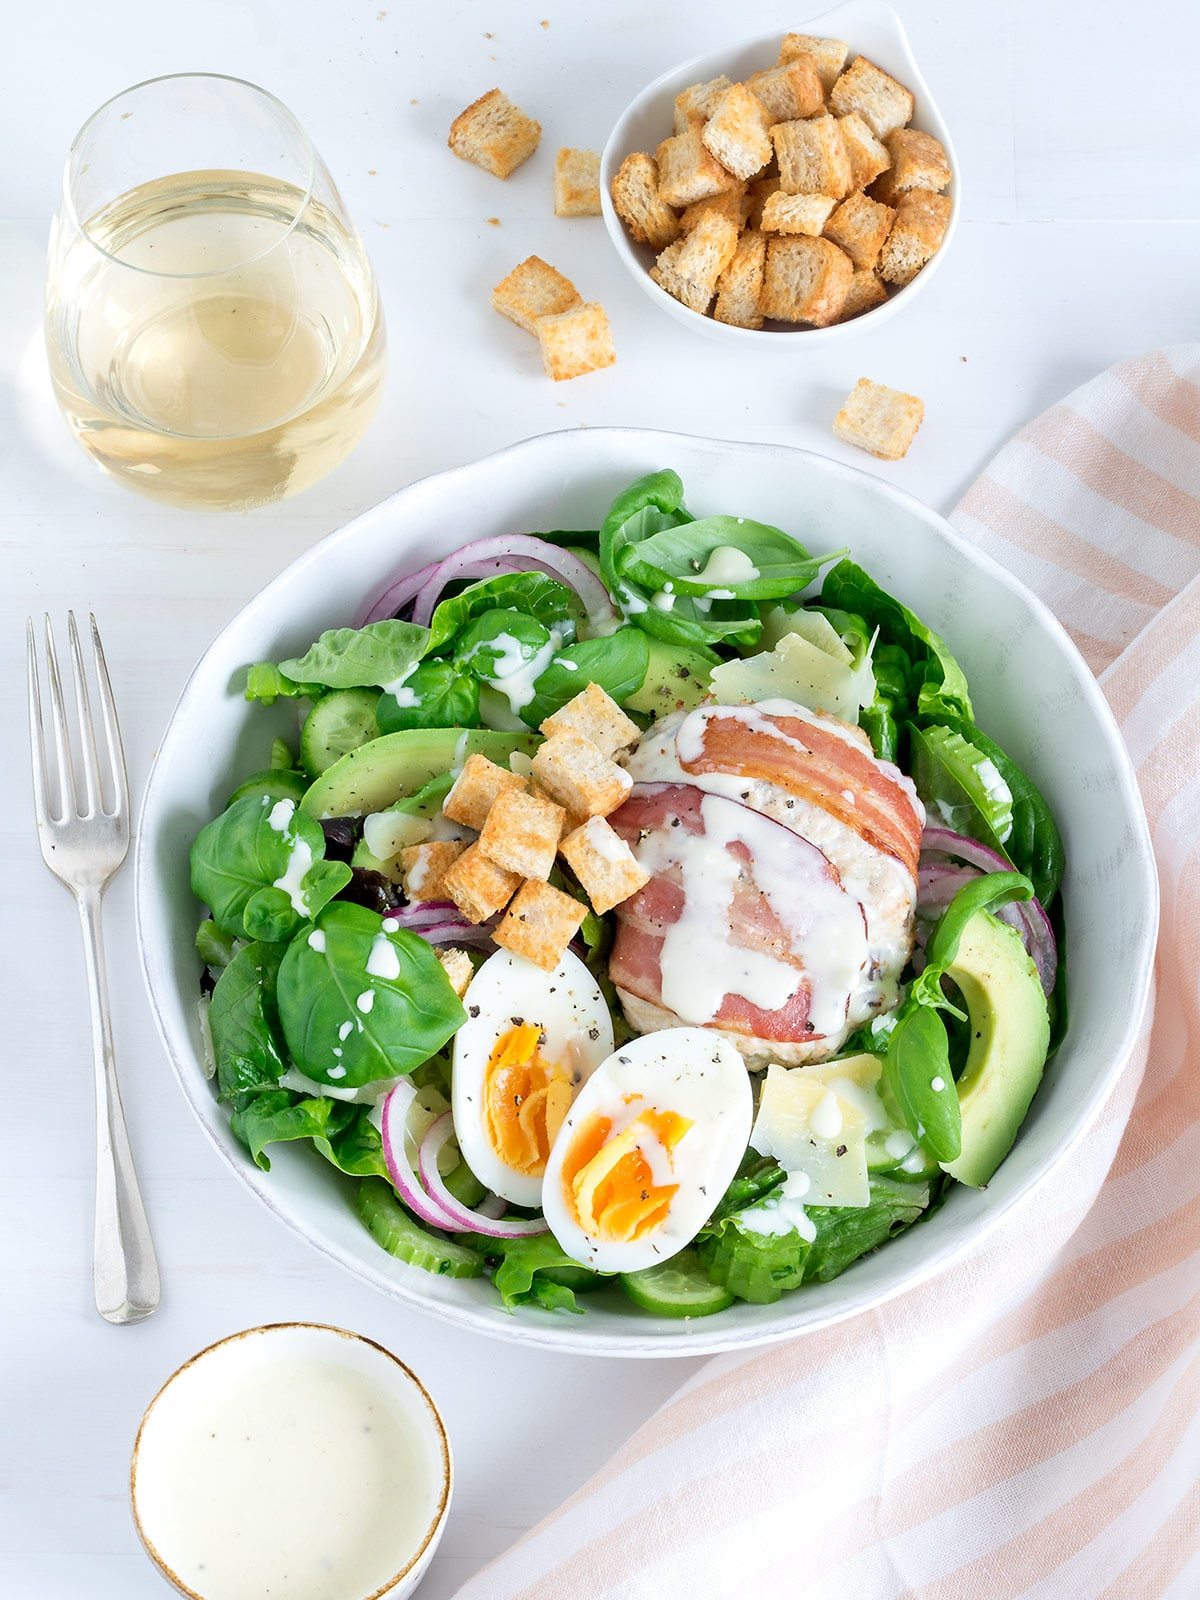 These chicken caesar burger bowls are a jazzed up version of caesar salad. I've thrown in a few extra veggies for more nutrition and flavour. This is a really yummy, lower carb dinner.